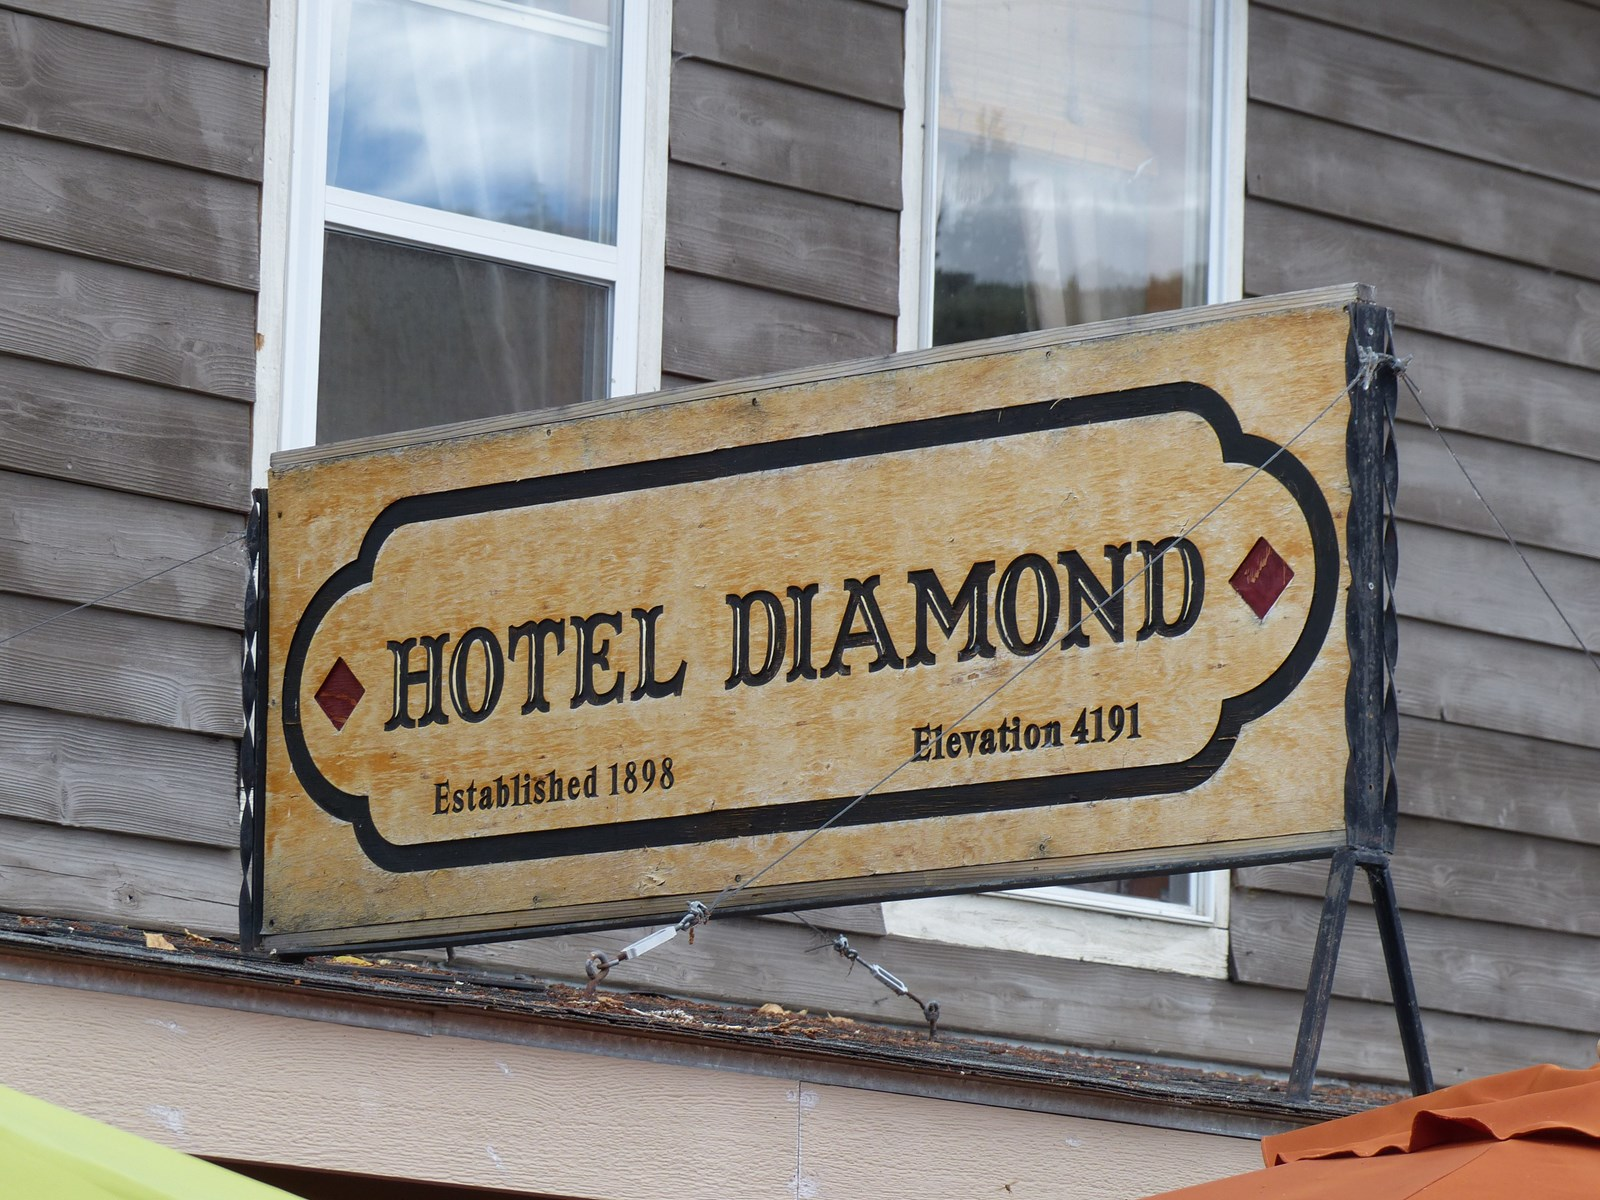 HISTORIC HOTEL DIAMOND FOR SALE IN DIAMOND OREGON